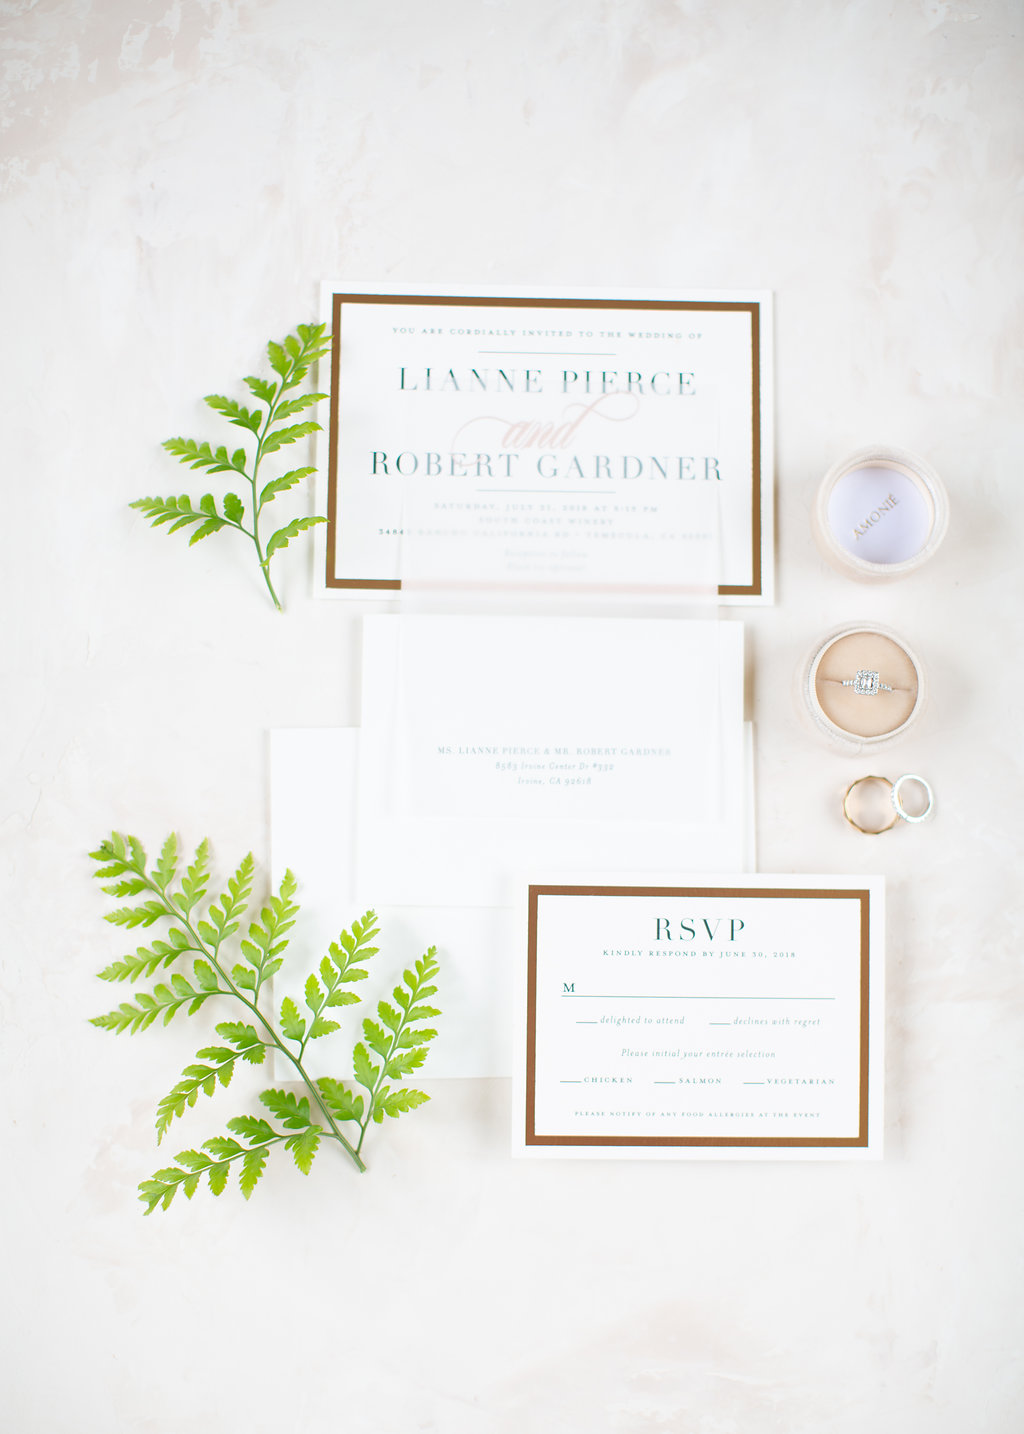 Basic Invite Invitation Suite Real Wedding Inspiration